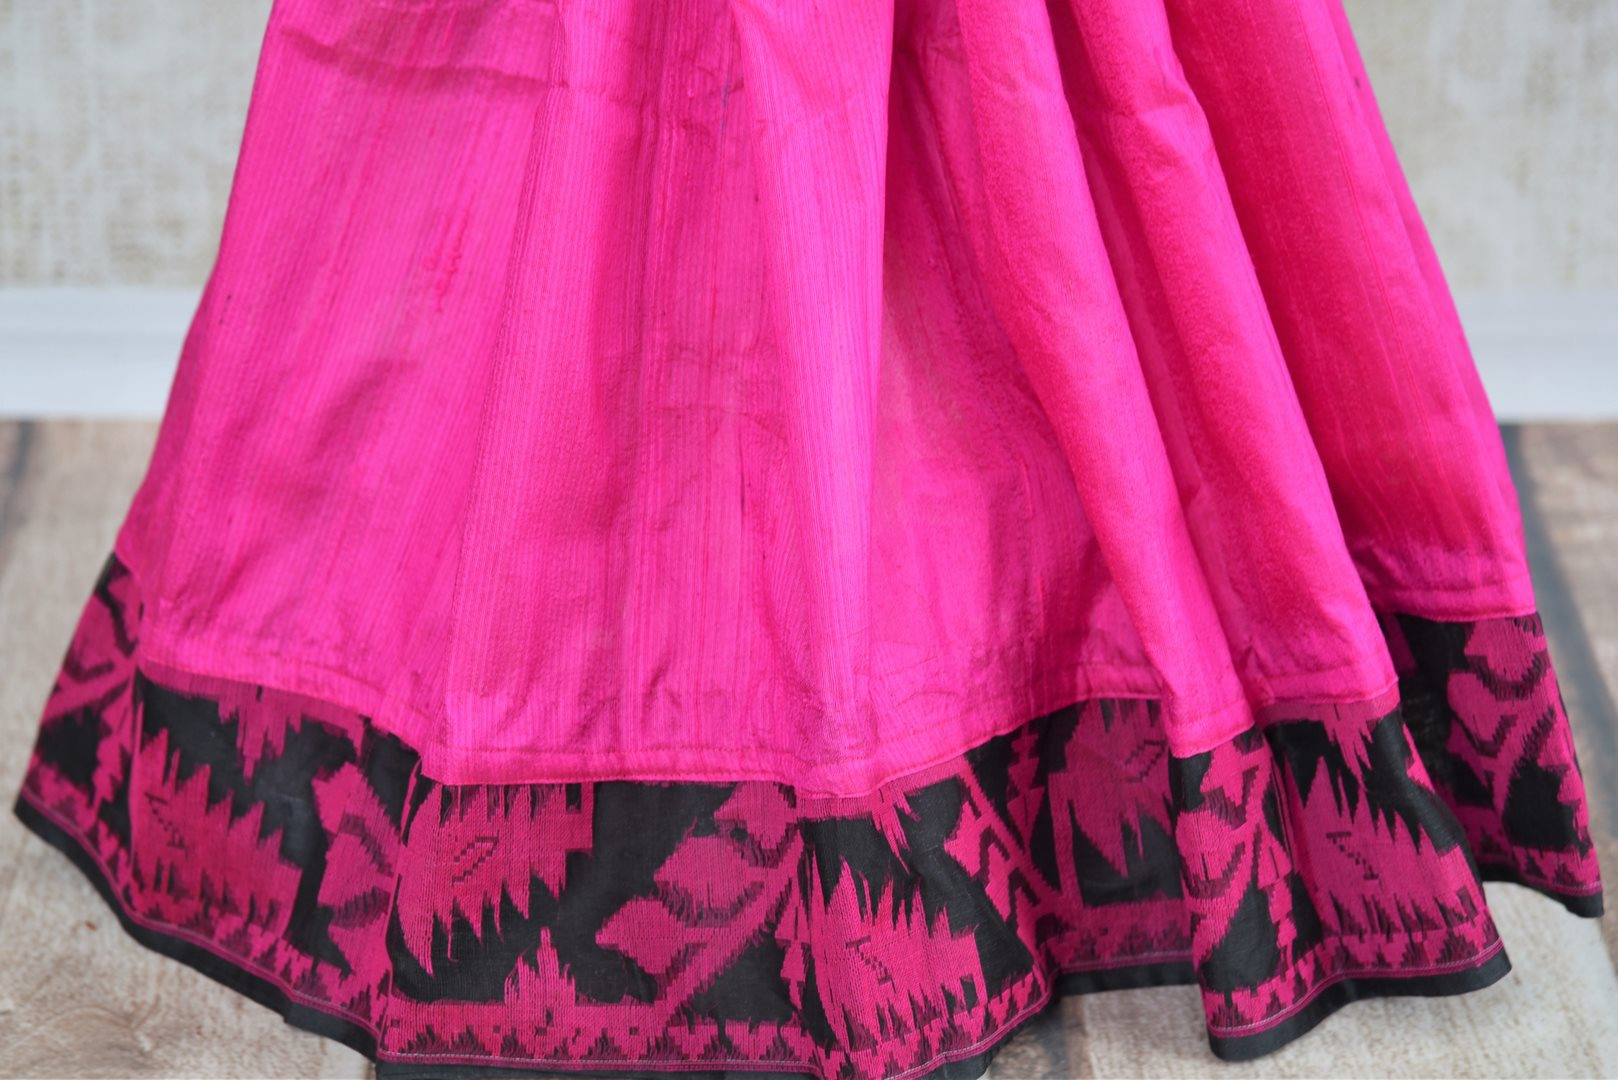 Buy pink raw silk saree with dhakai jamdani weave online in USA. The saree is a perfect drape for a traditional Indian look at special occasions. Spoil yourself with an exquisite collection of Indian handloom sarees in USA available at Pure Elegance Indian clothing store. -pleats